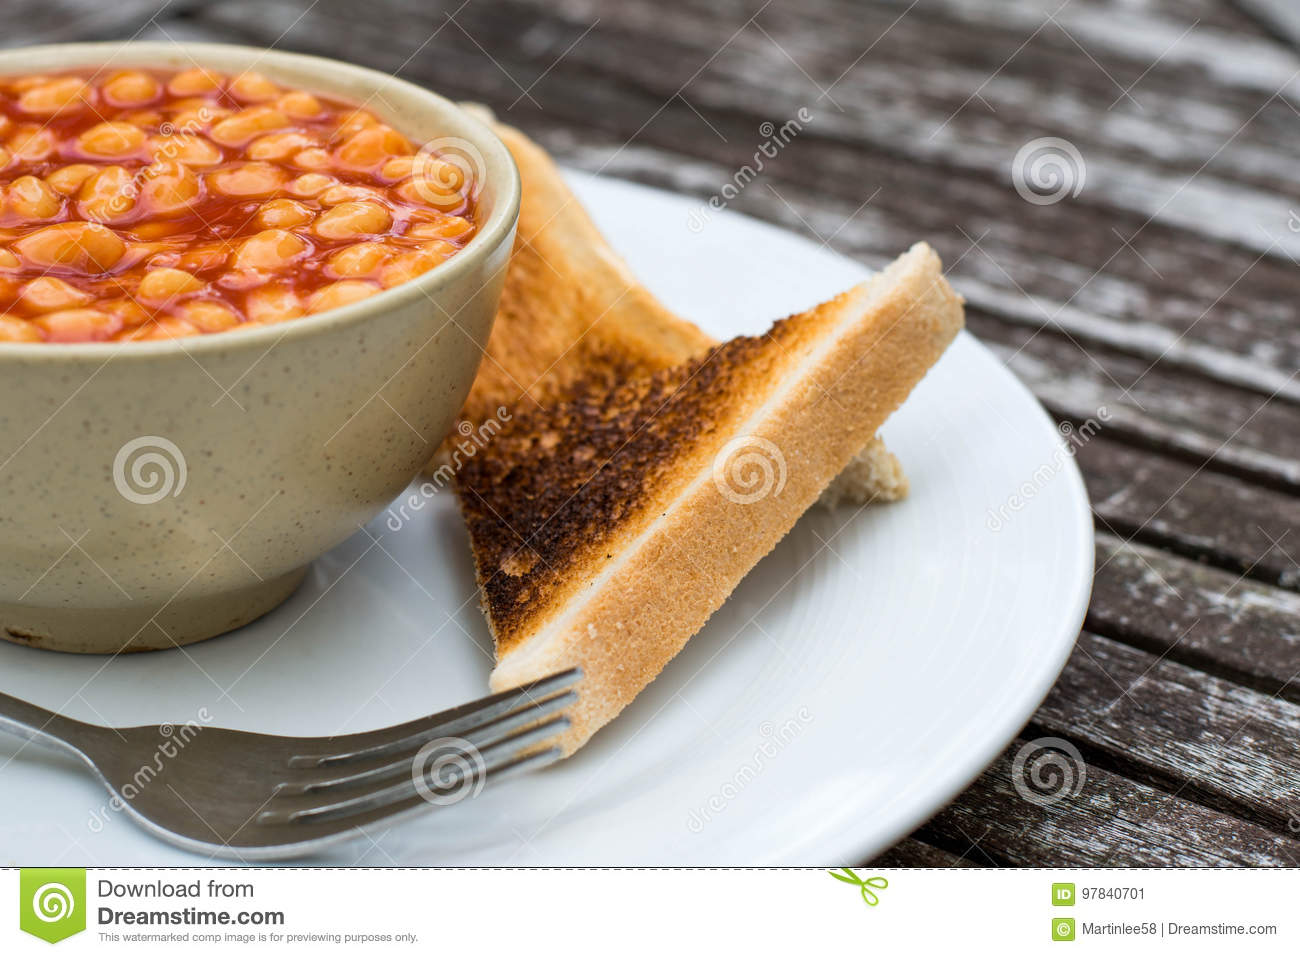 Baked Beans in Tomato Sauce With Dry Toast